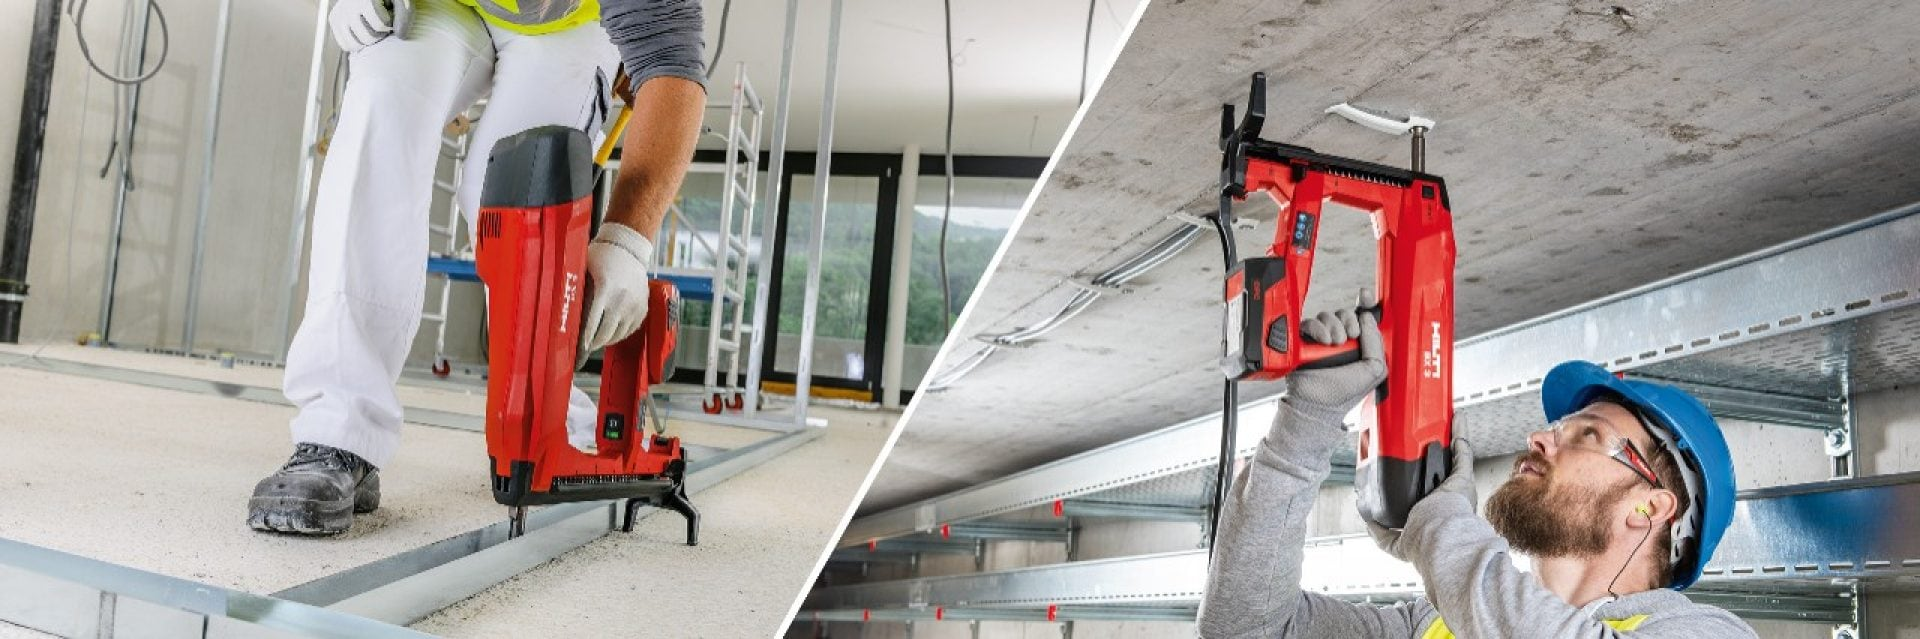 Make the switch to the battery-powered BX 3, the cordless nailer designed to be cleaner, quieter and more hassle-free fastenings to concrete than any other nailer